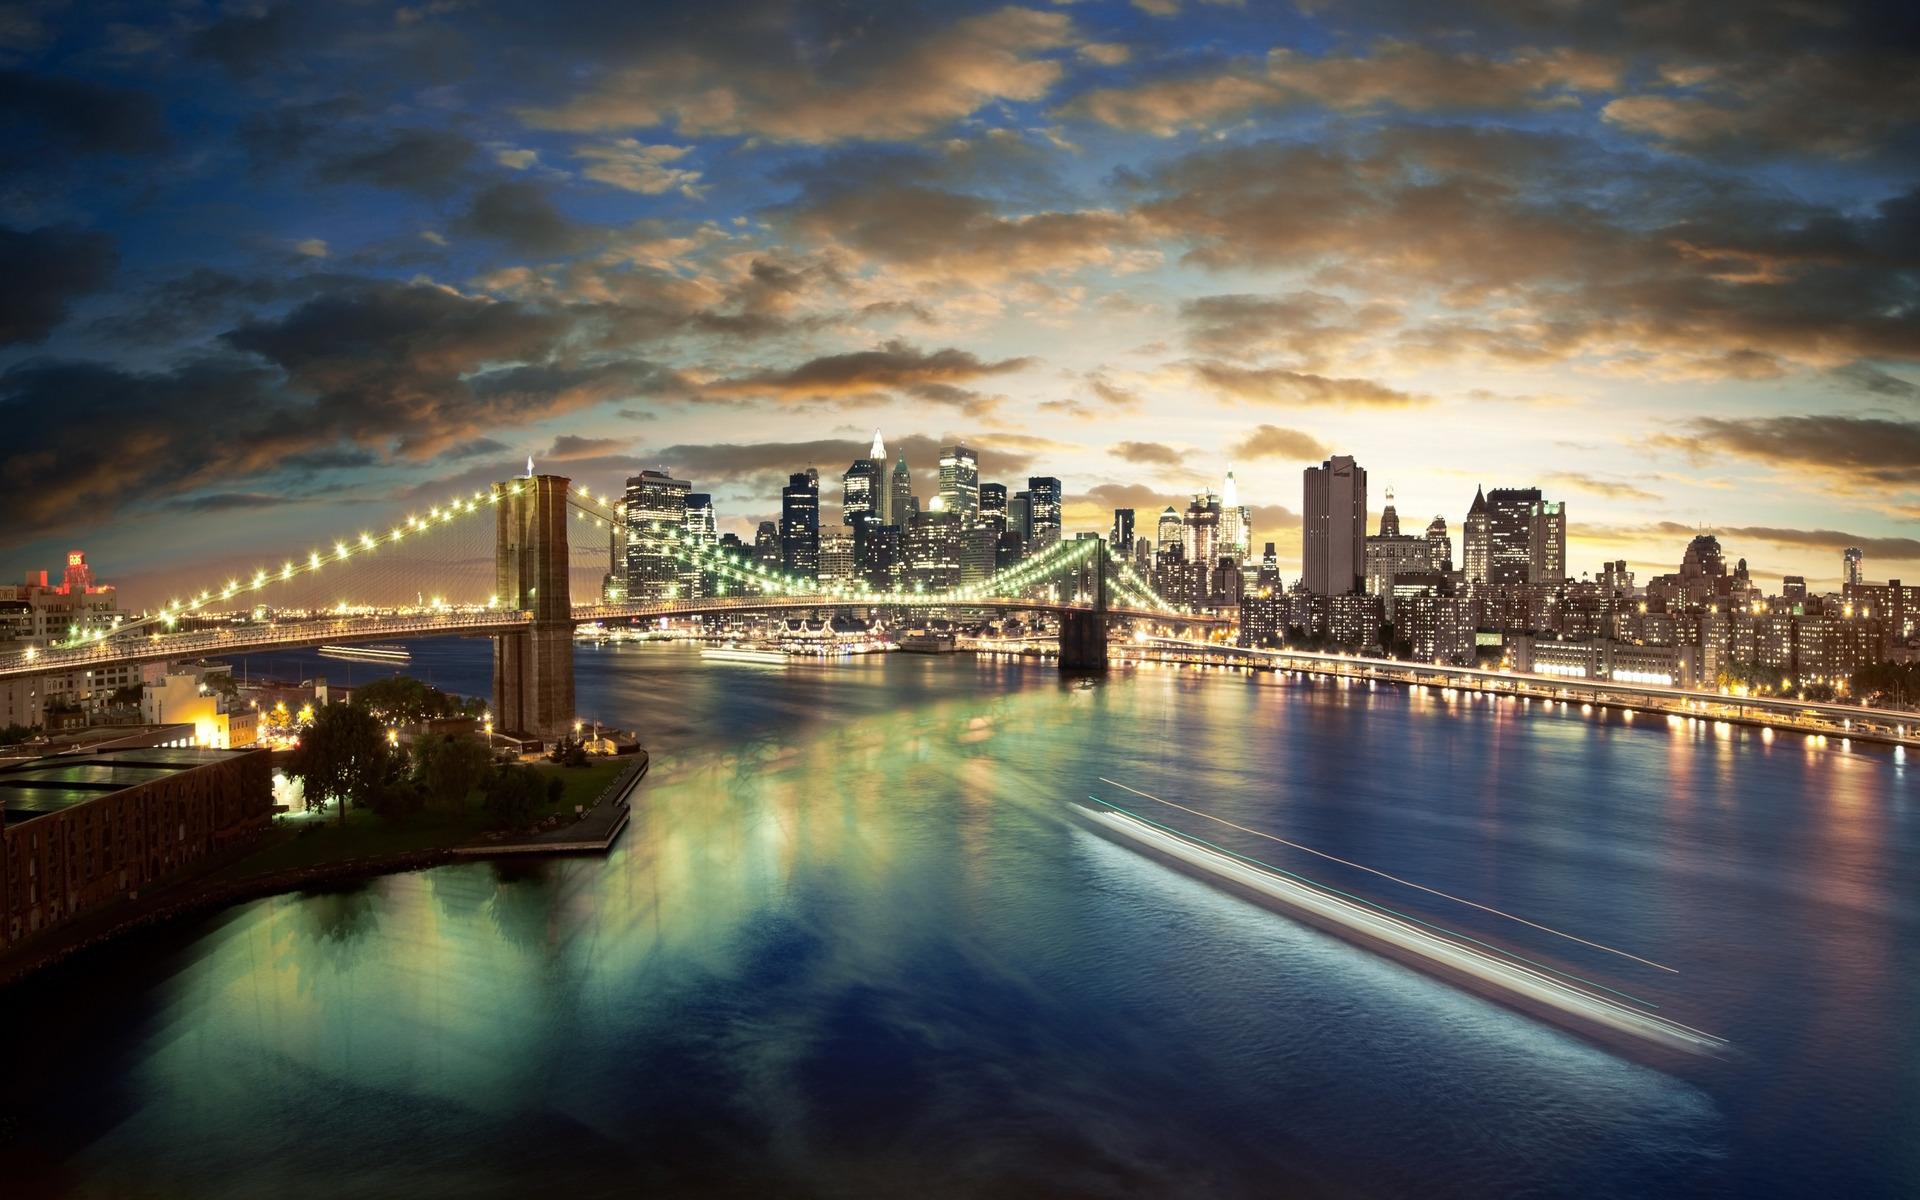 city, buildings, bridge, cloud, sea, night, lights